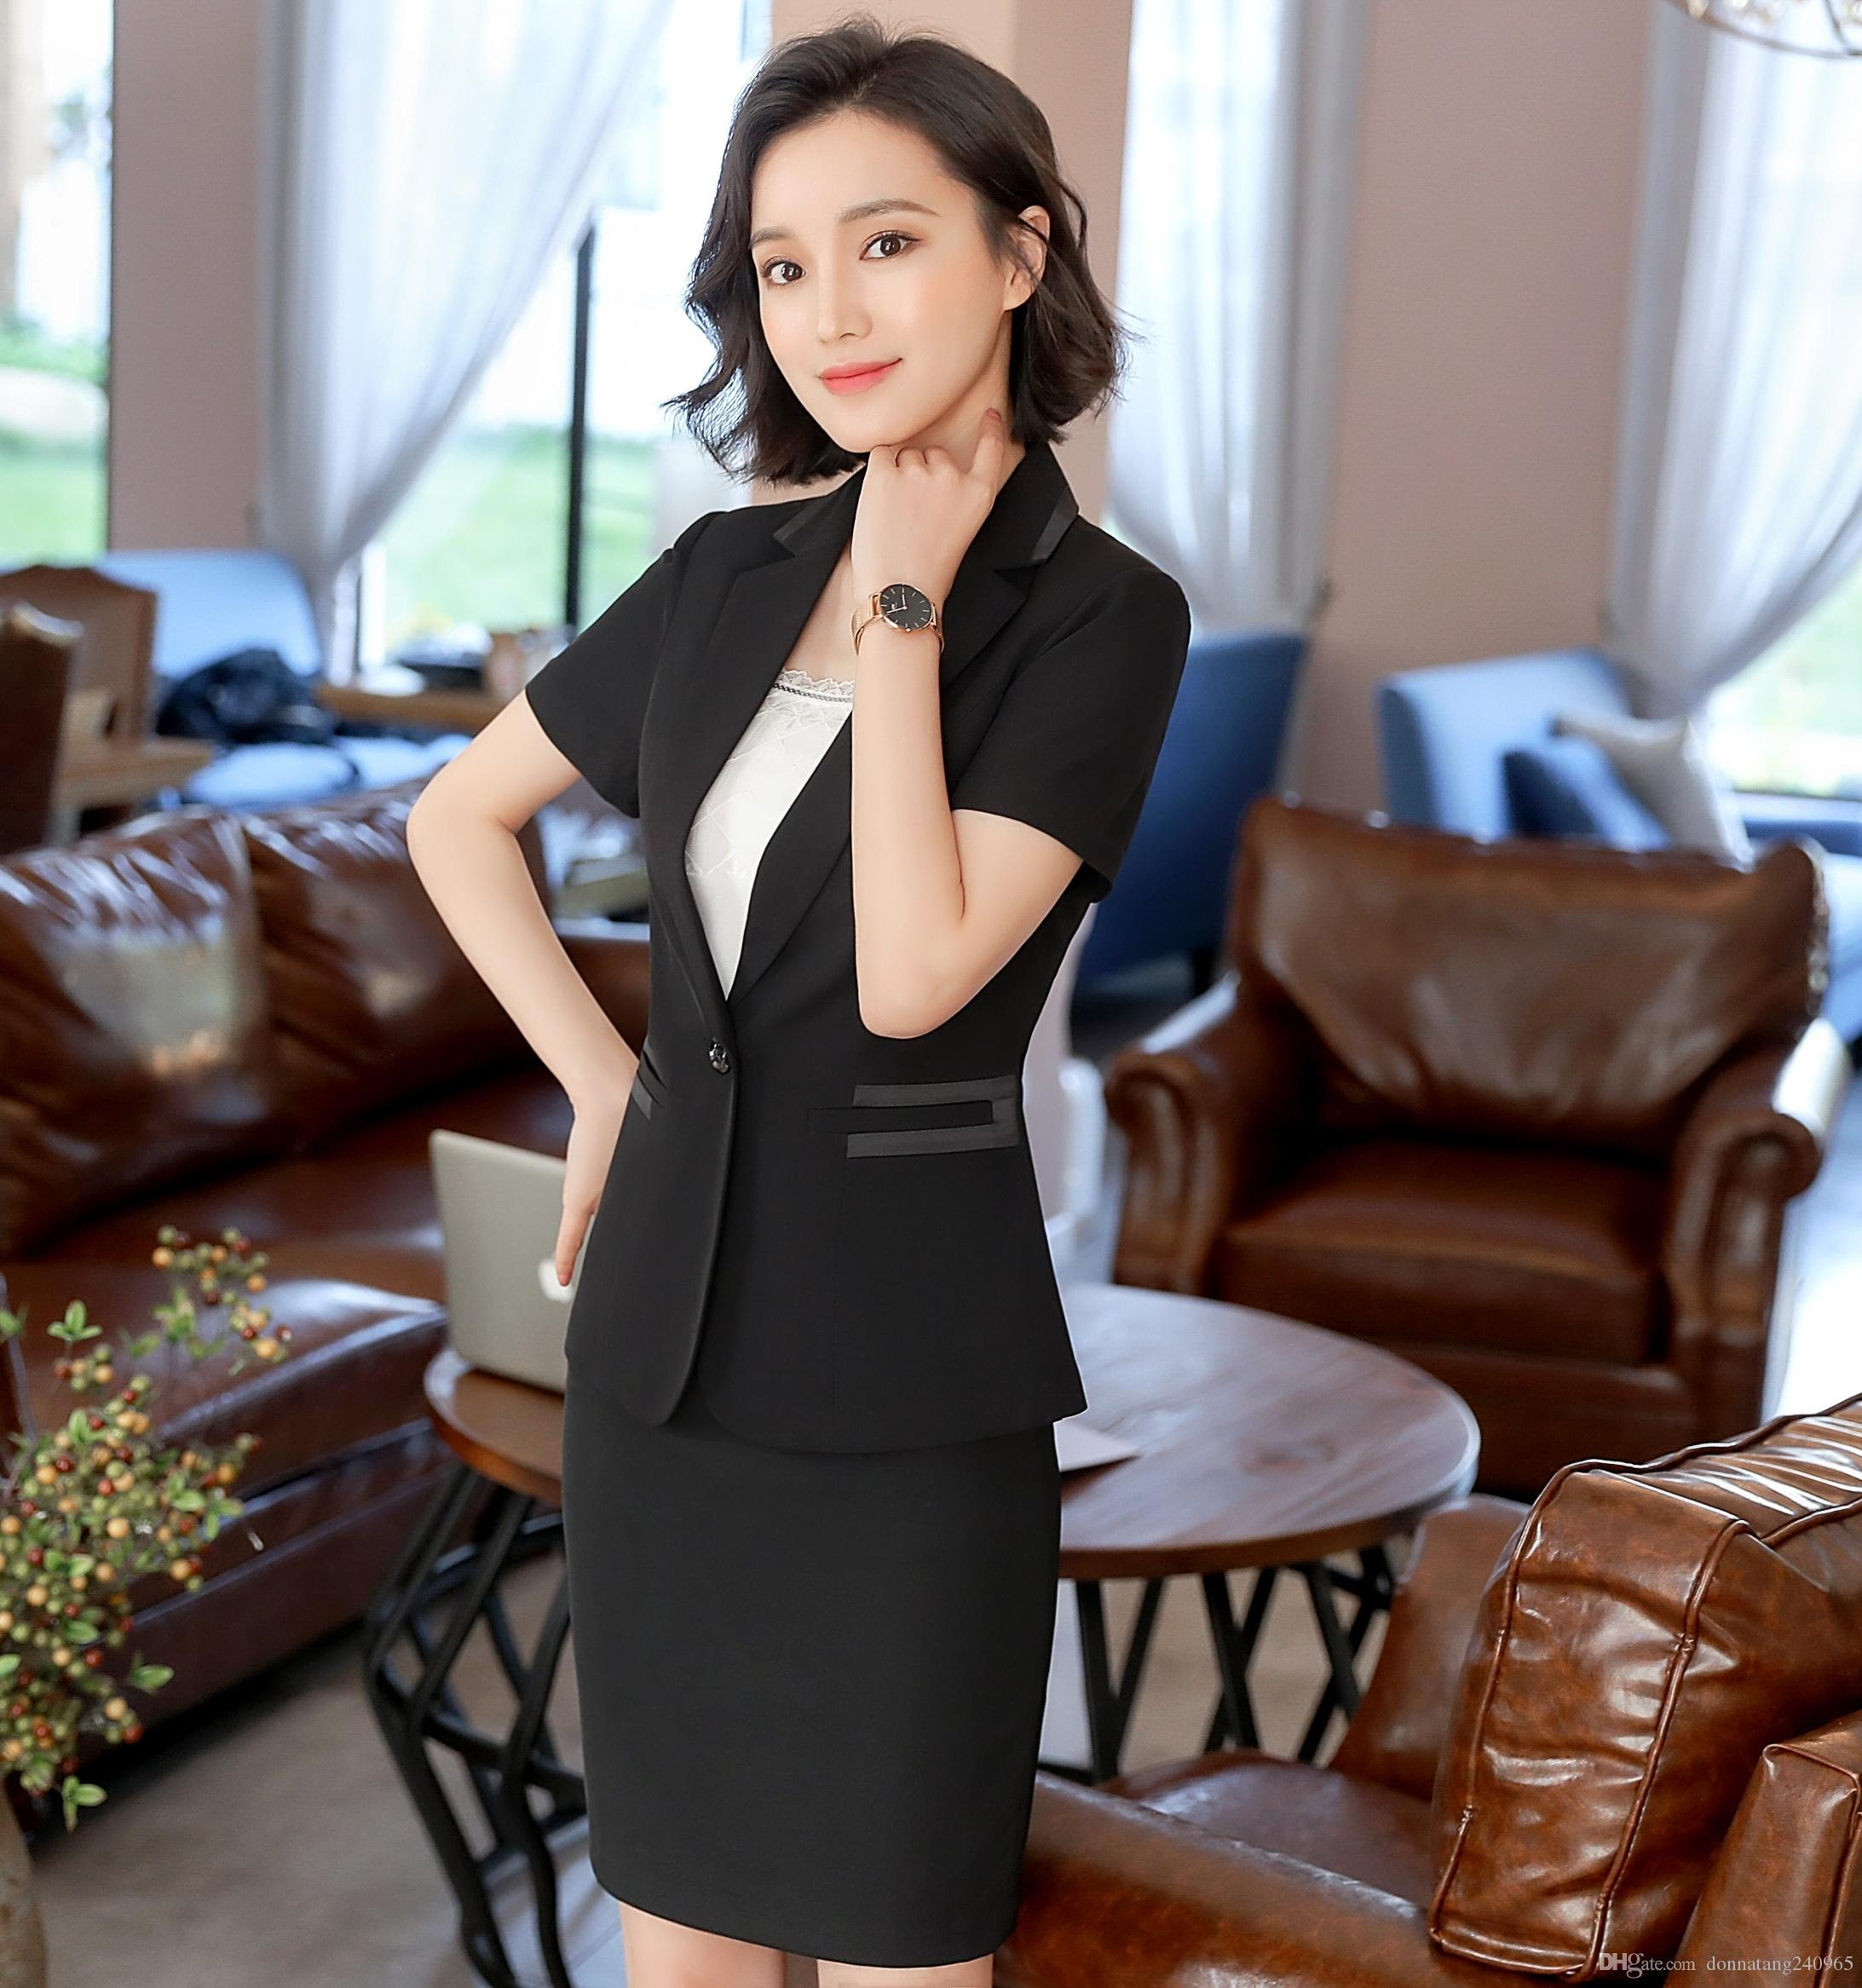 bfbe7fdc6376 2019 Pant Suits Summer Wear Short Sleeve Formal Uniform Style Office Skirt  Suit Women Work Blazer Jacket With Trousers Or Skirt From Donnatang240965